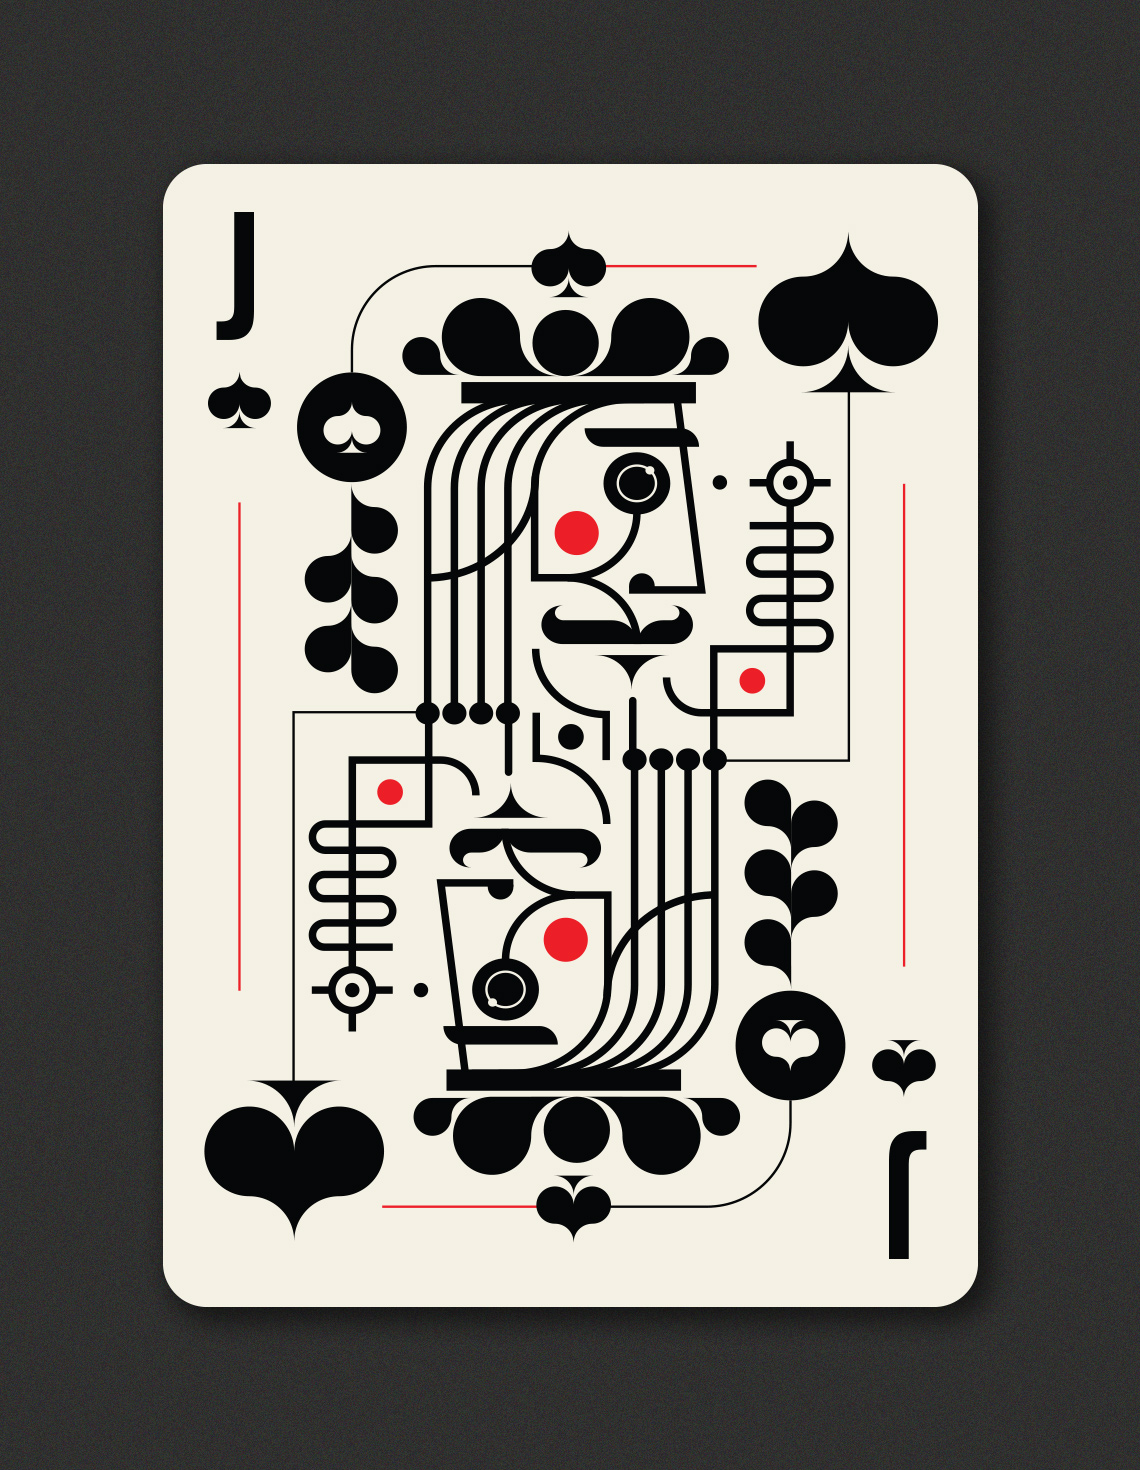 messymod-jack-of-spades-2